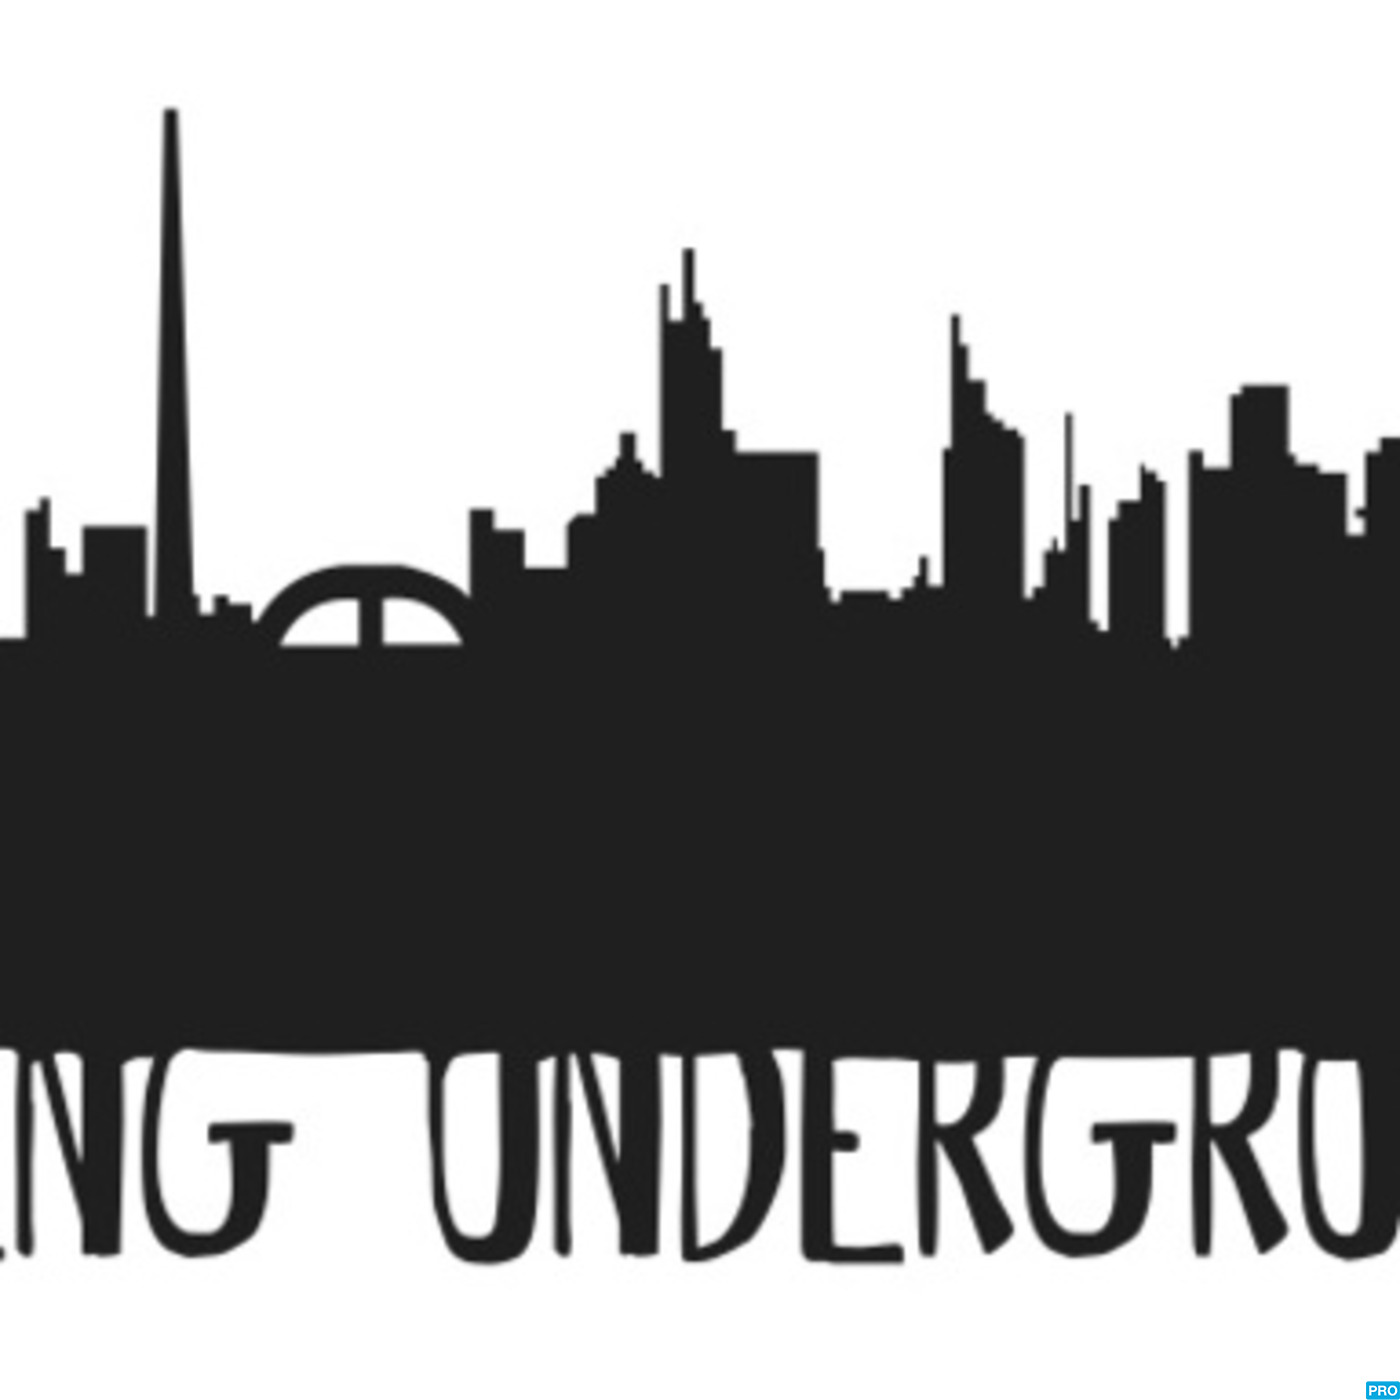 GOING UNDERGROUND's Podcast